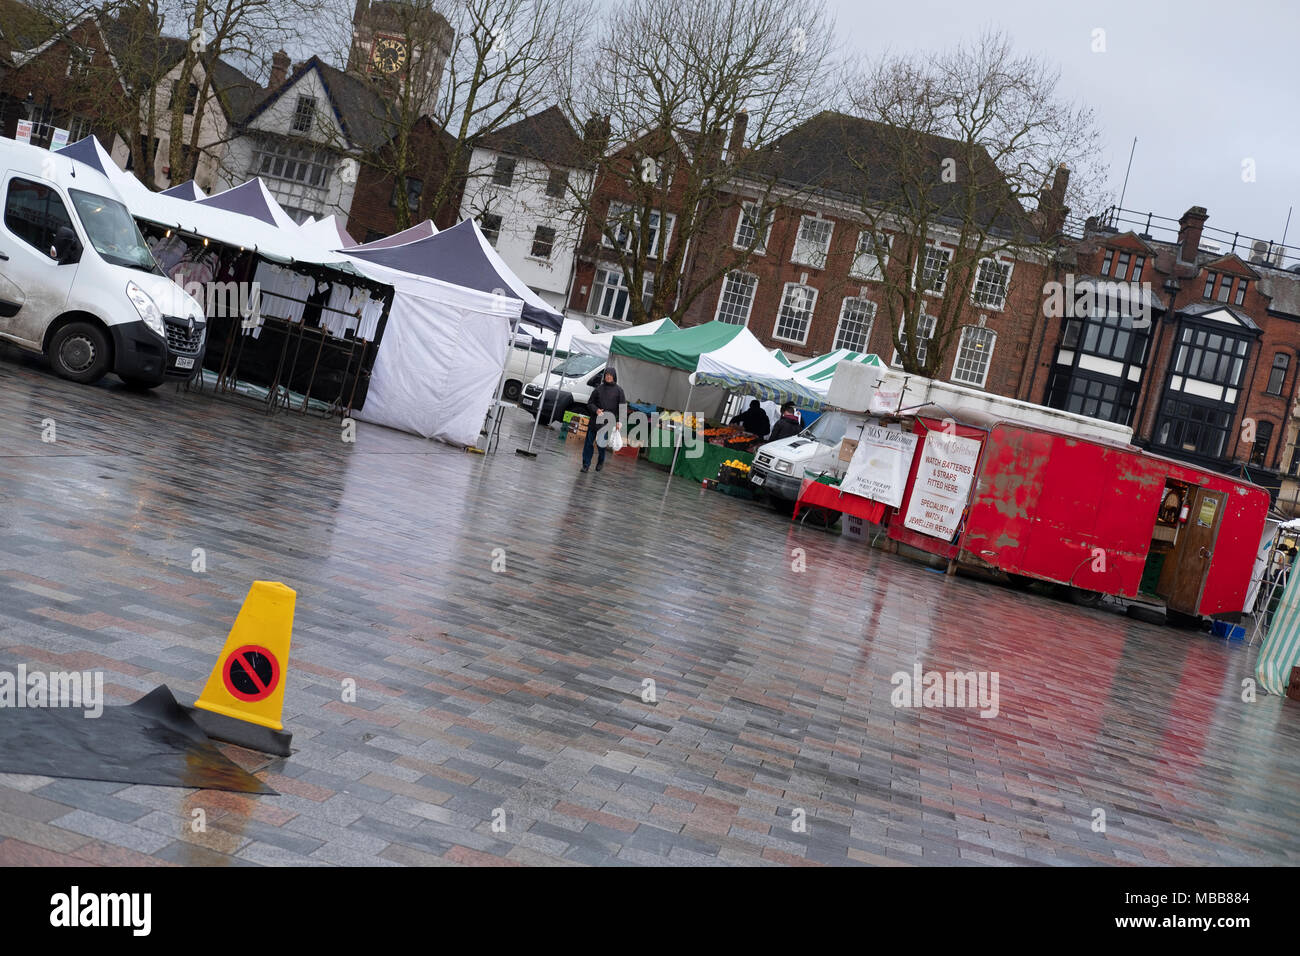 Salisbury Wiltshire Uk 10th April 2018 Uk Weather Grey Damp Start To The Day With Very Few Shoppers In The Market Despite The Government And Local